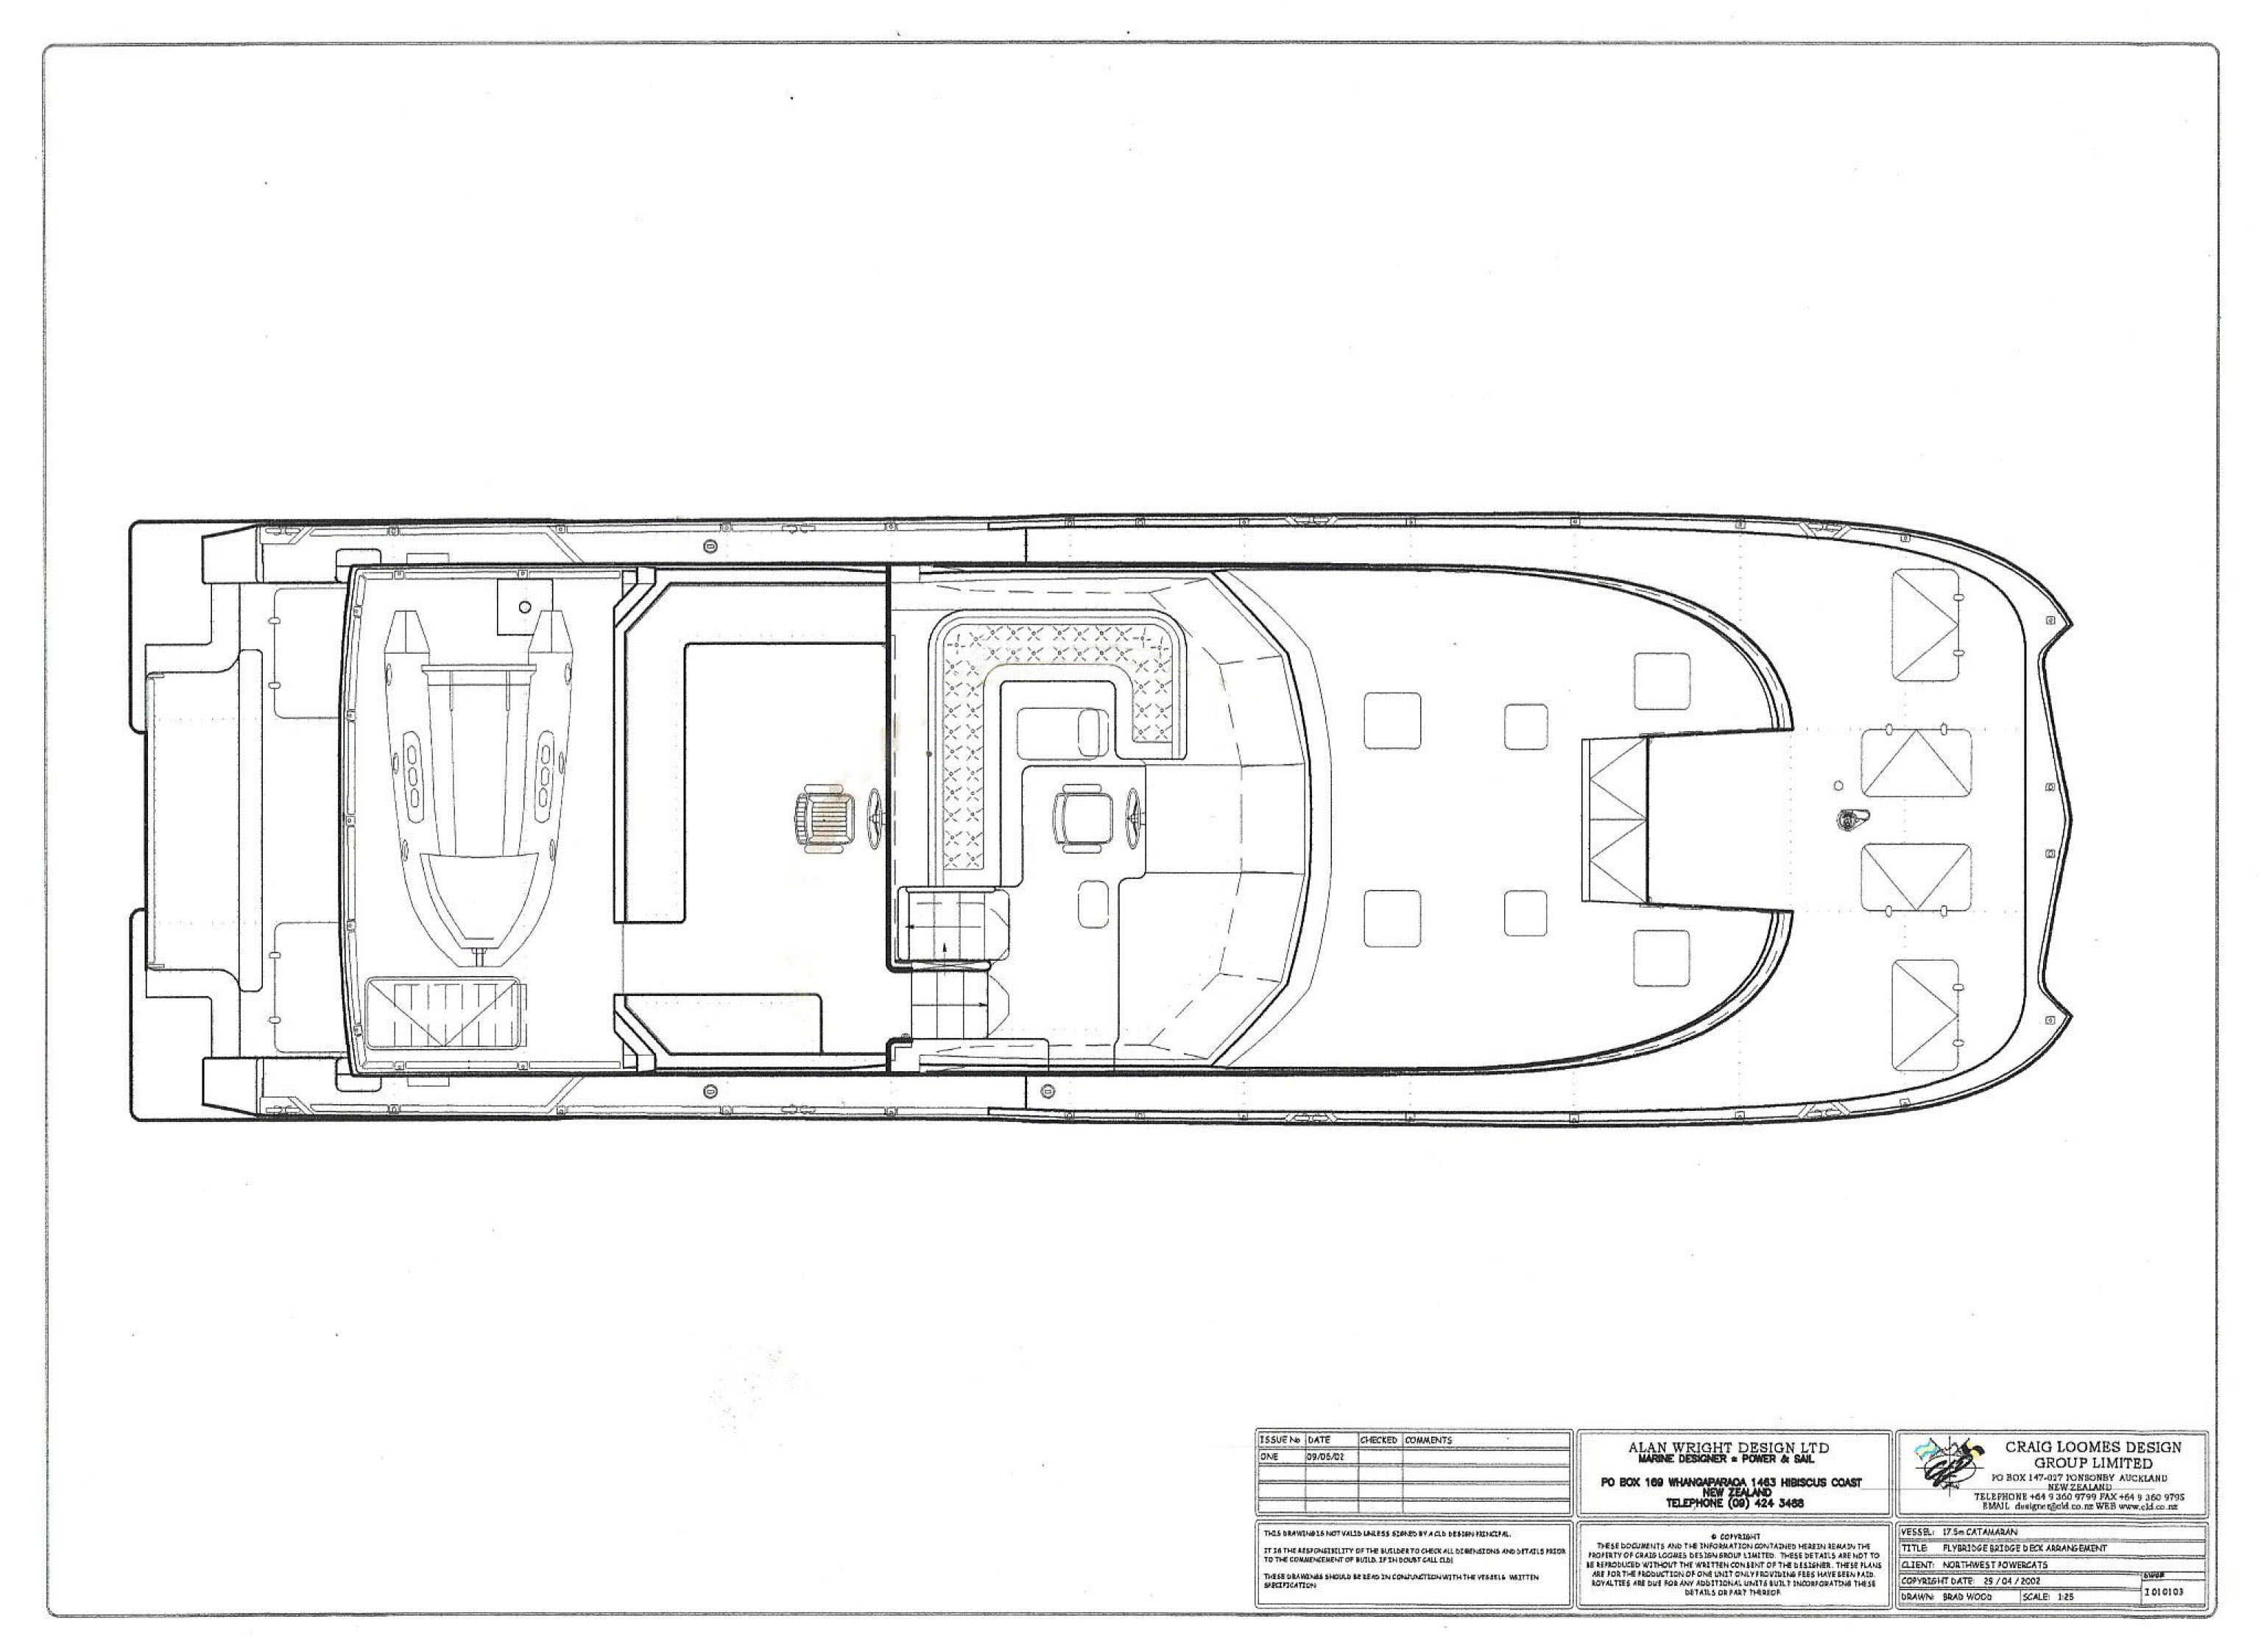 58ft plan upper layout